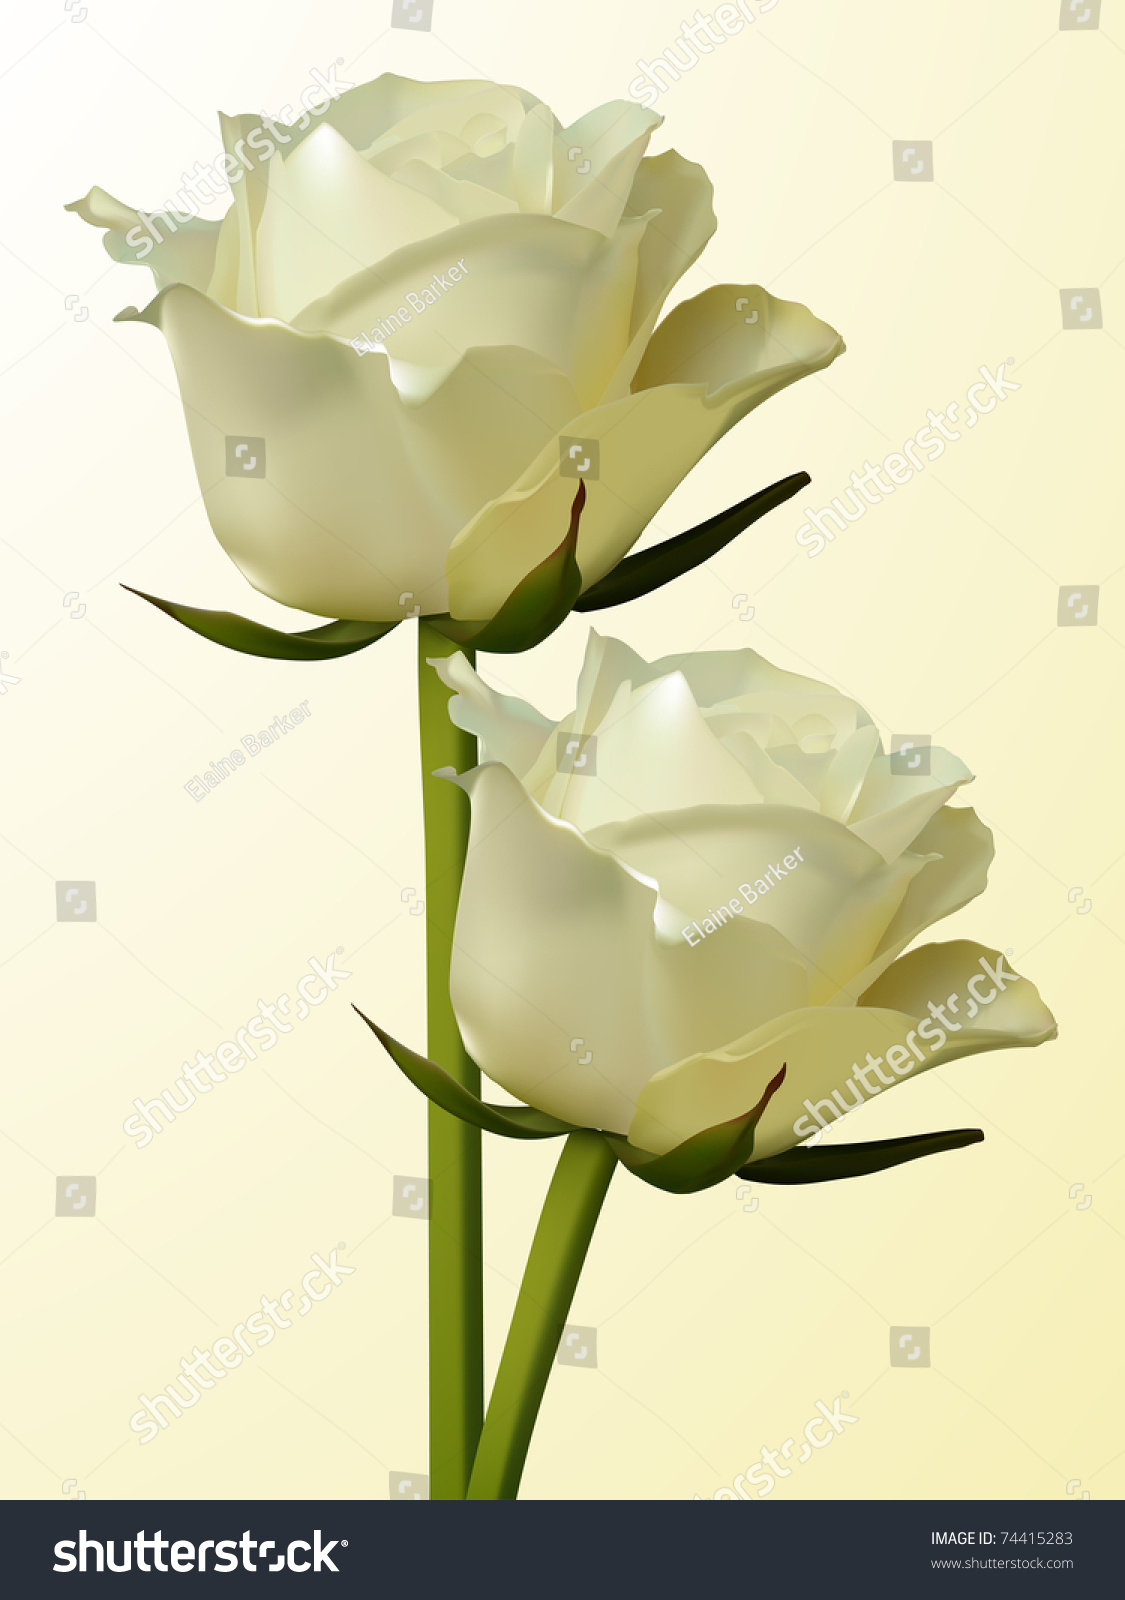 two ivory coloured roses on cream stock illustration 74415283